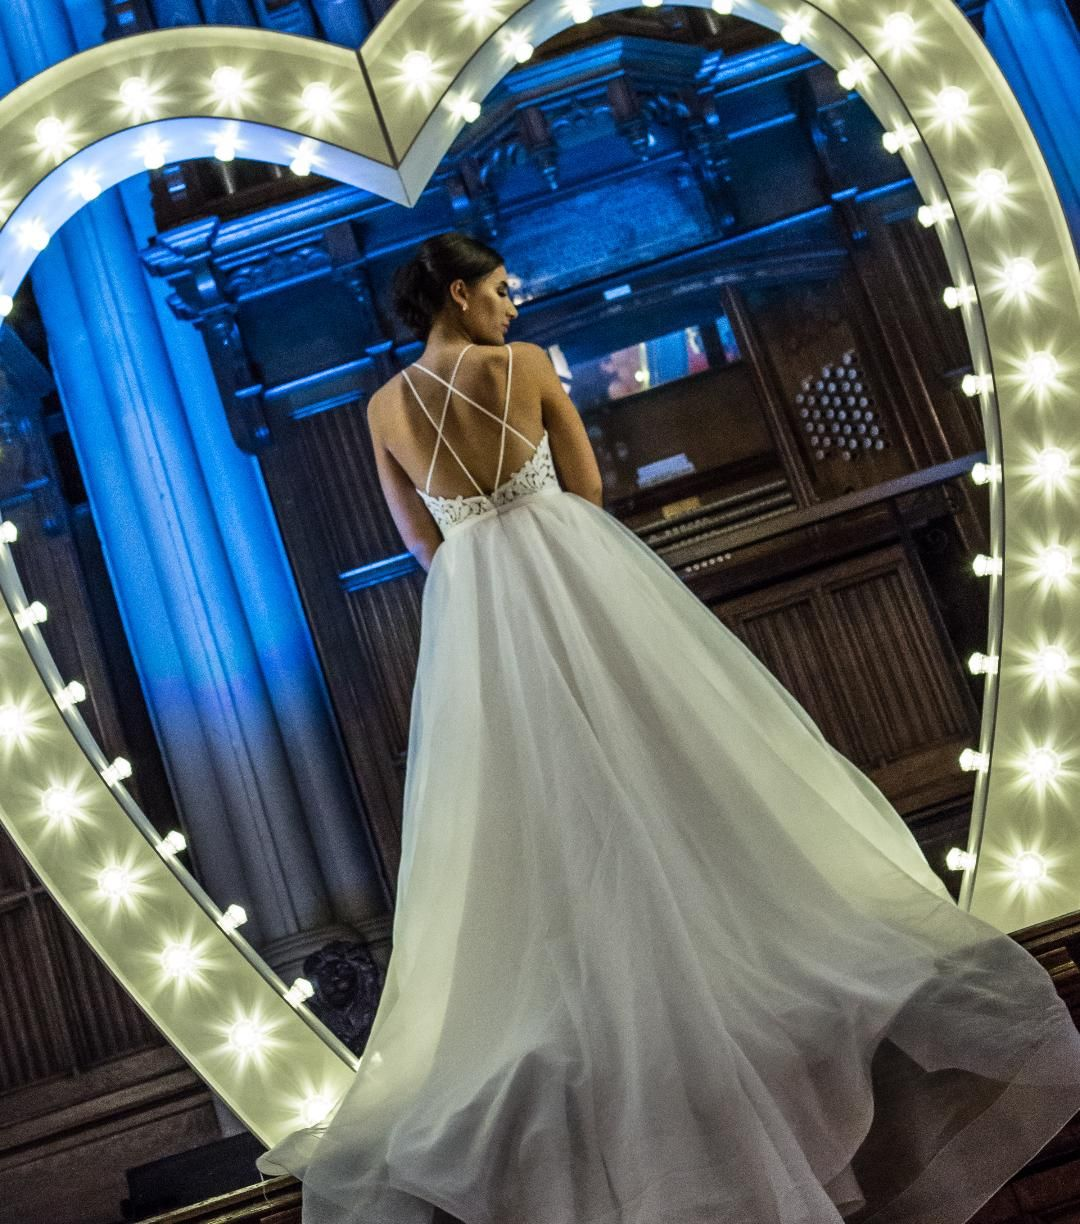 LED Light Up Love Heart Arch with Bride